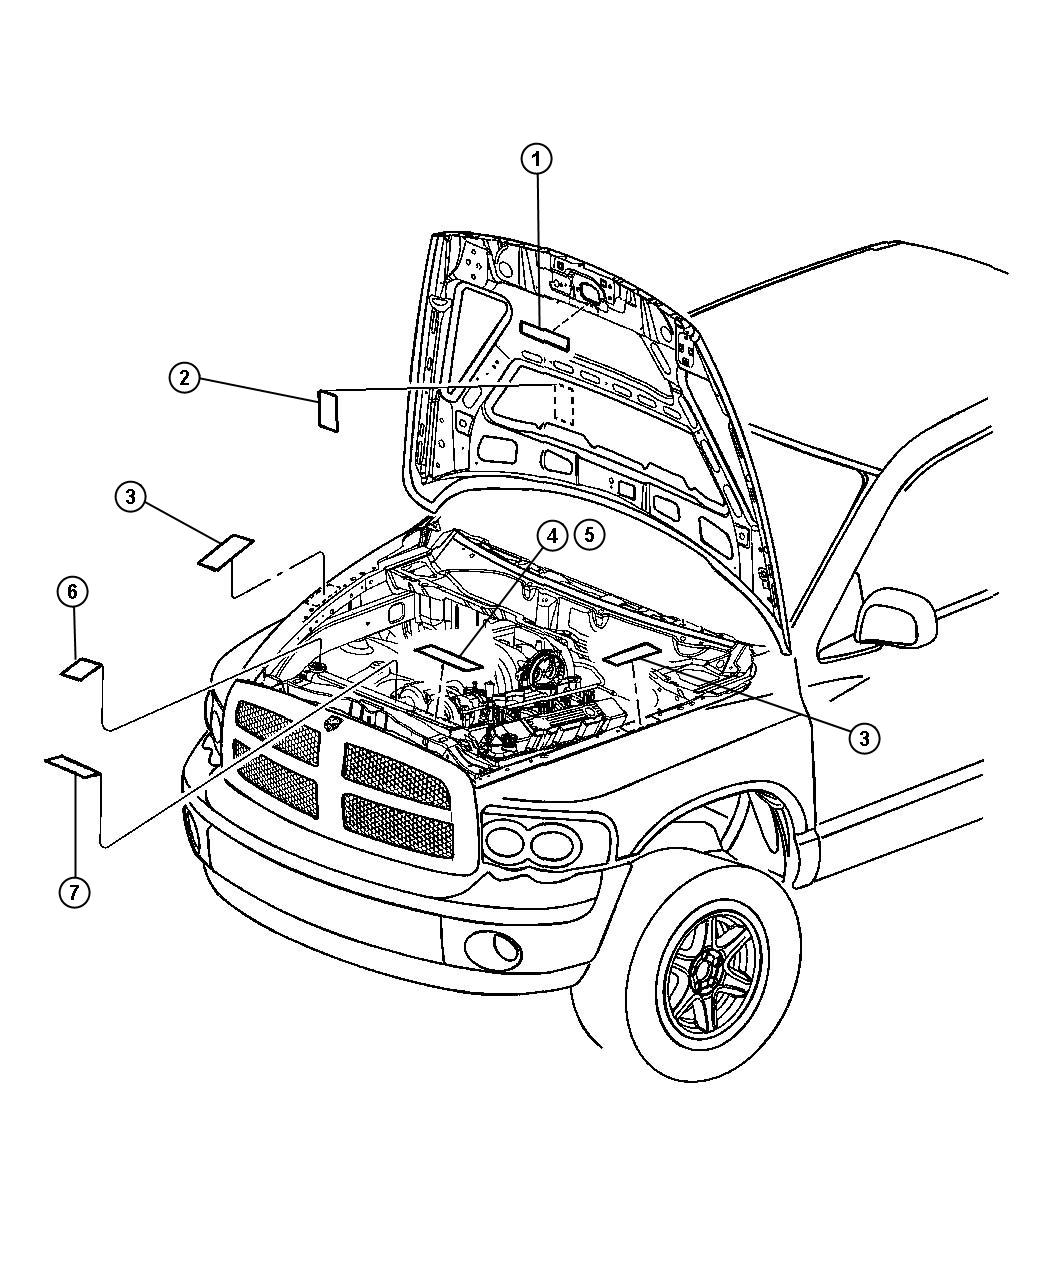 bus engine compartment diagram dometic rv fridge wiring vw free image for user